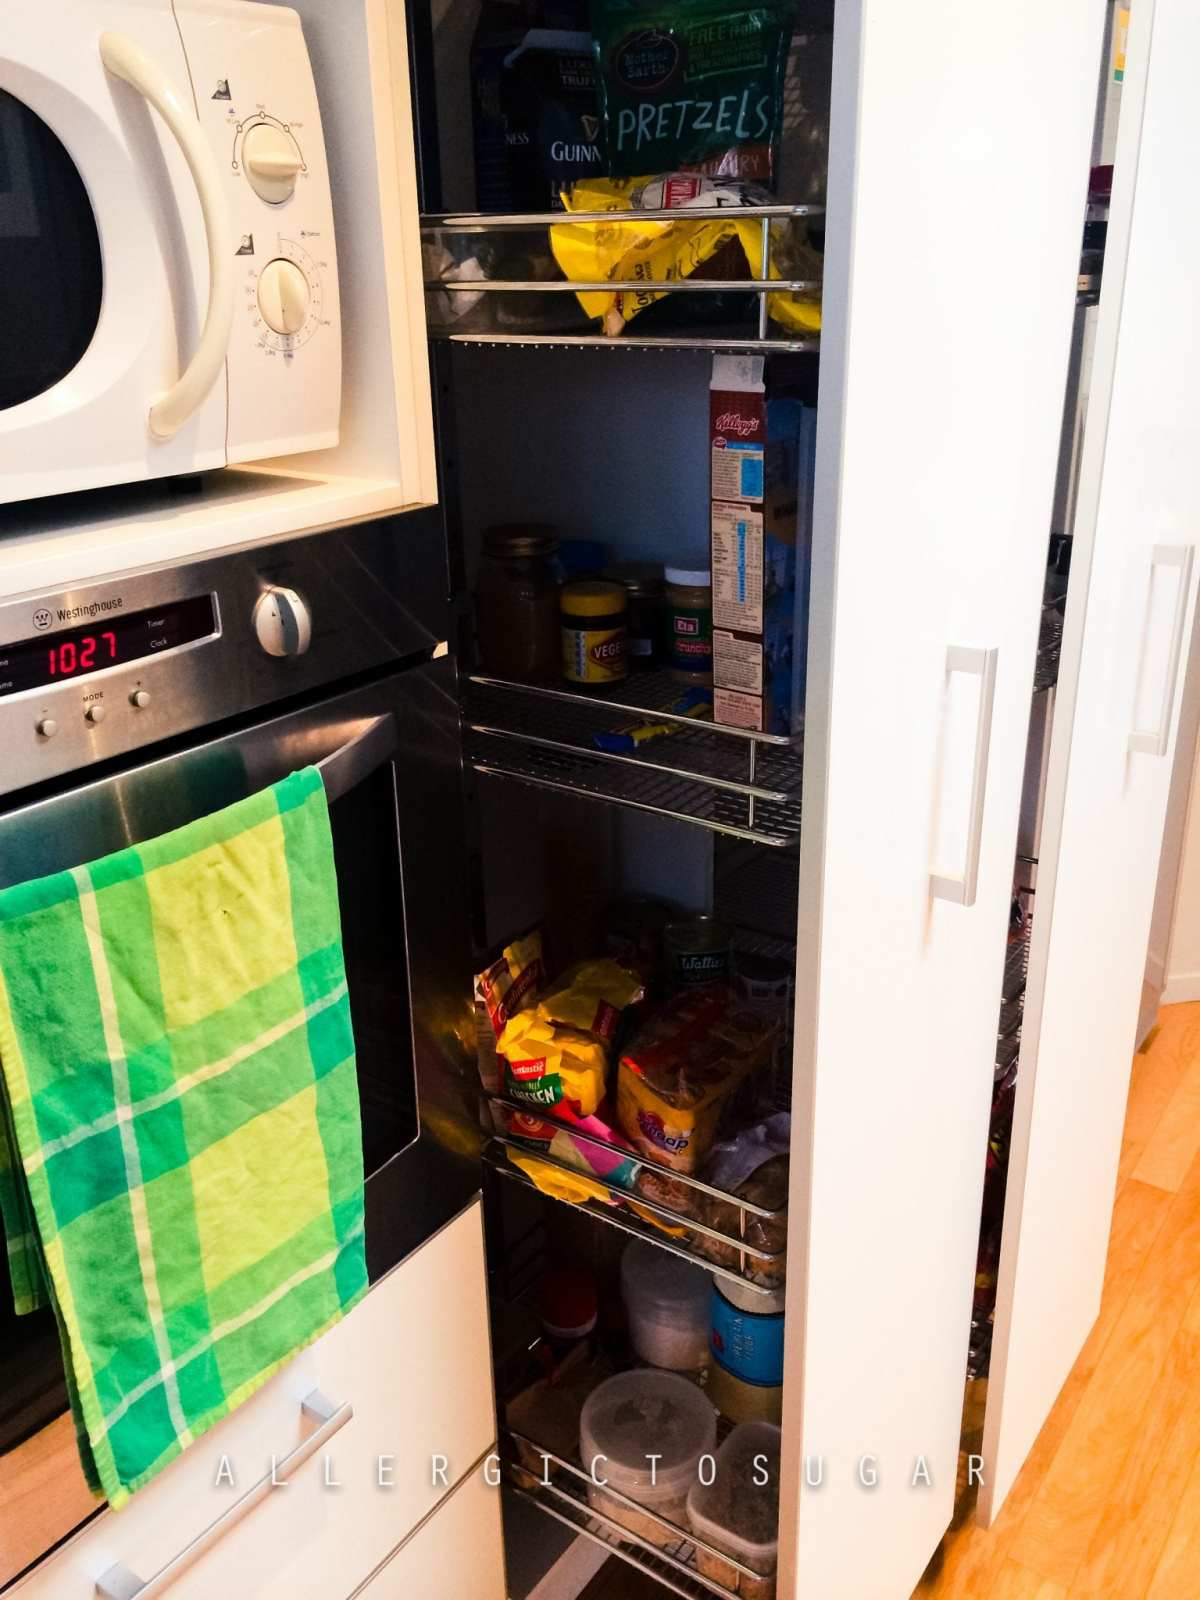 Allergic to Sugar: Whole 30 Kitchen Clean Out